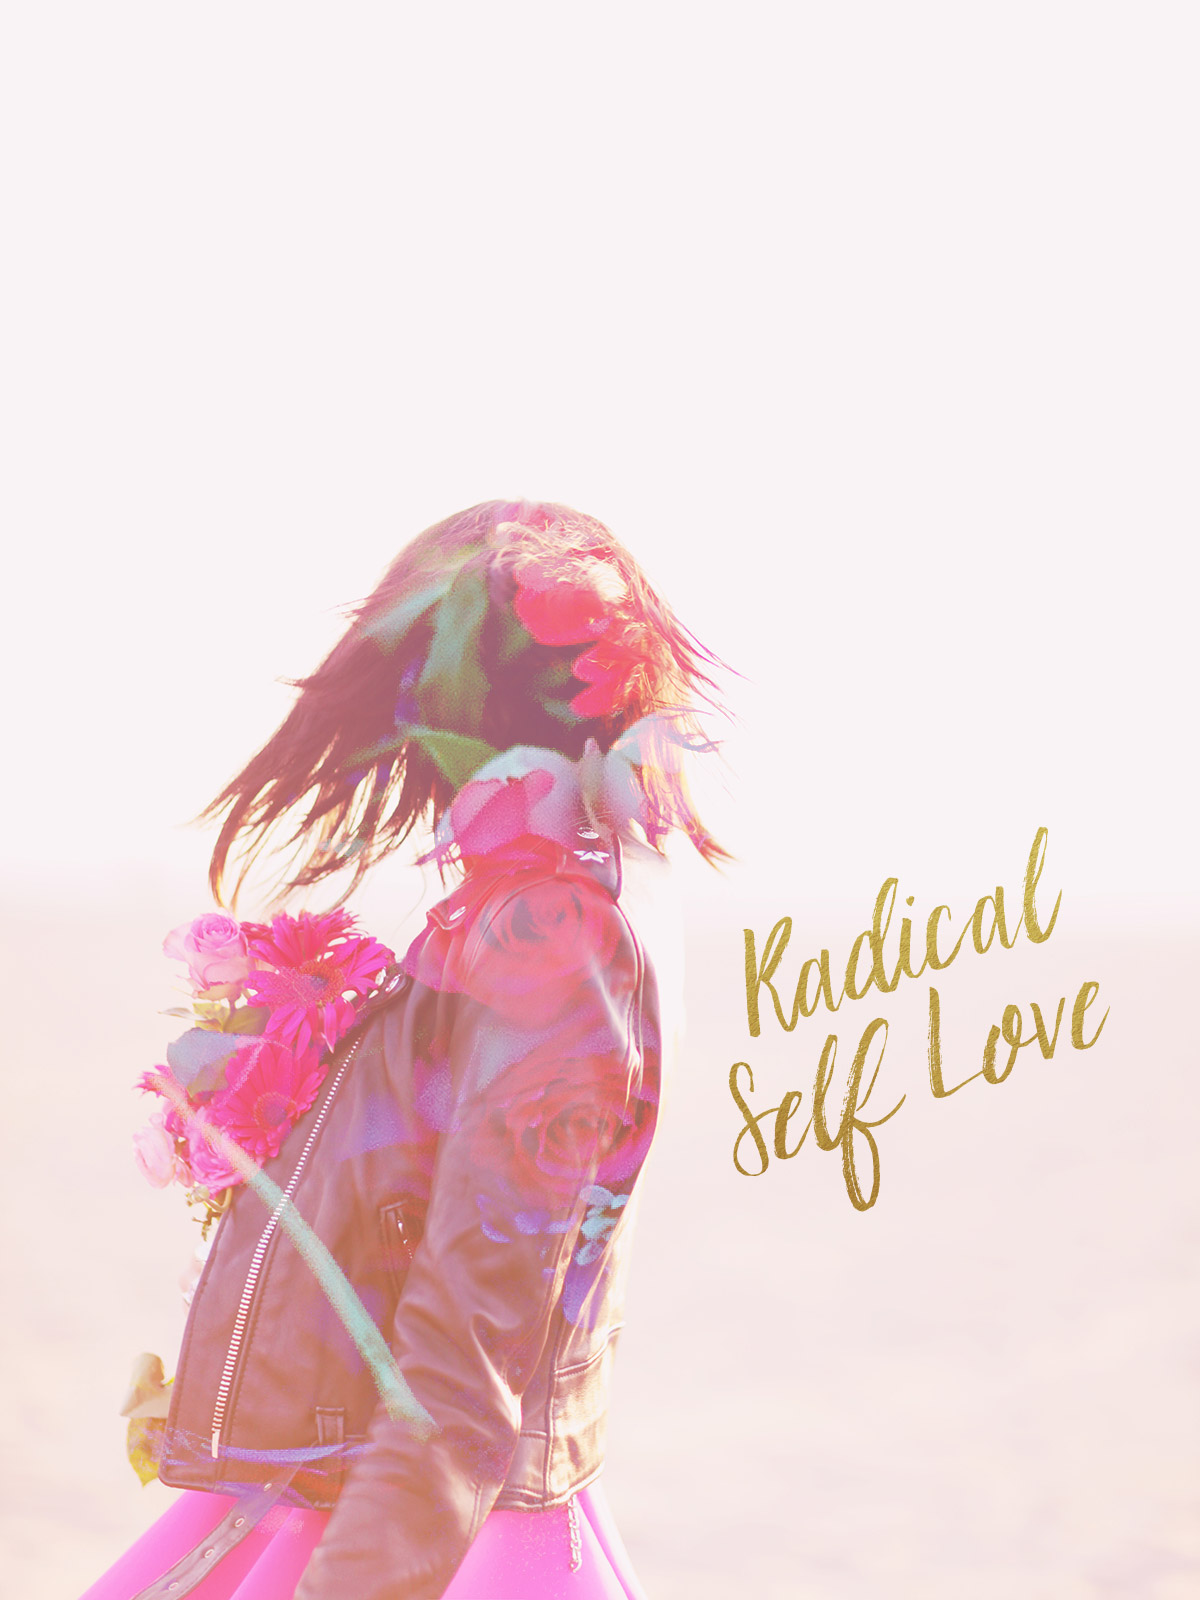 radical self love an interview about entrepreneurship radical self love an interview about entrepreneurship inspiration and motivation gala darling